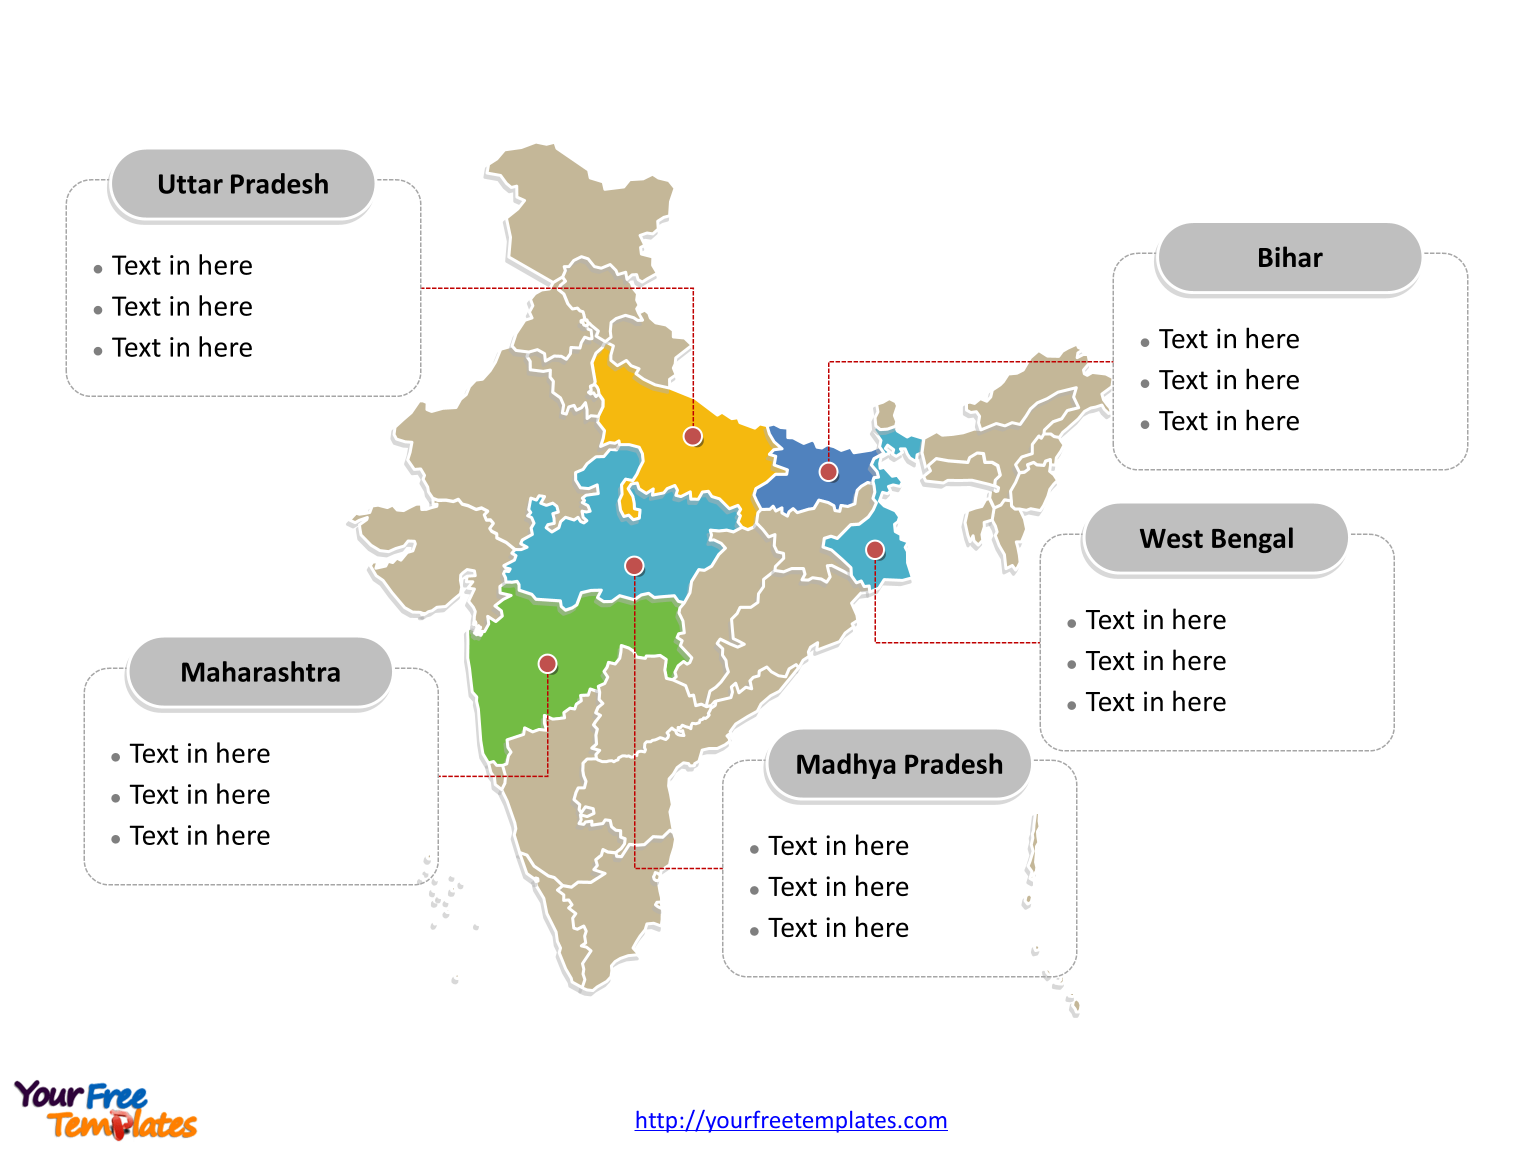 India Map blank templates - Free PowerPoint Templates on west indies world map, north central west, north central region usa map, india south asia map, north east south west us map, north hill stations india, south india state map, north east south west wind, south west monsoon current map, north east south west travel, south west native american tribes map, north goa map, north east south west geography, west indies on map, west india docks london map, north compass star clip art, north east india tour, north indian, east china sea asia map,